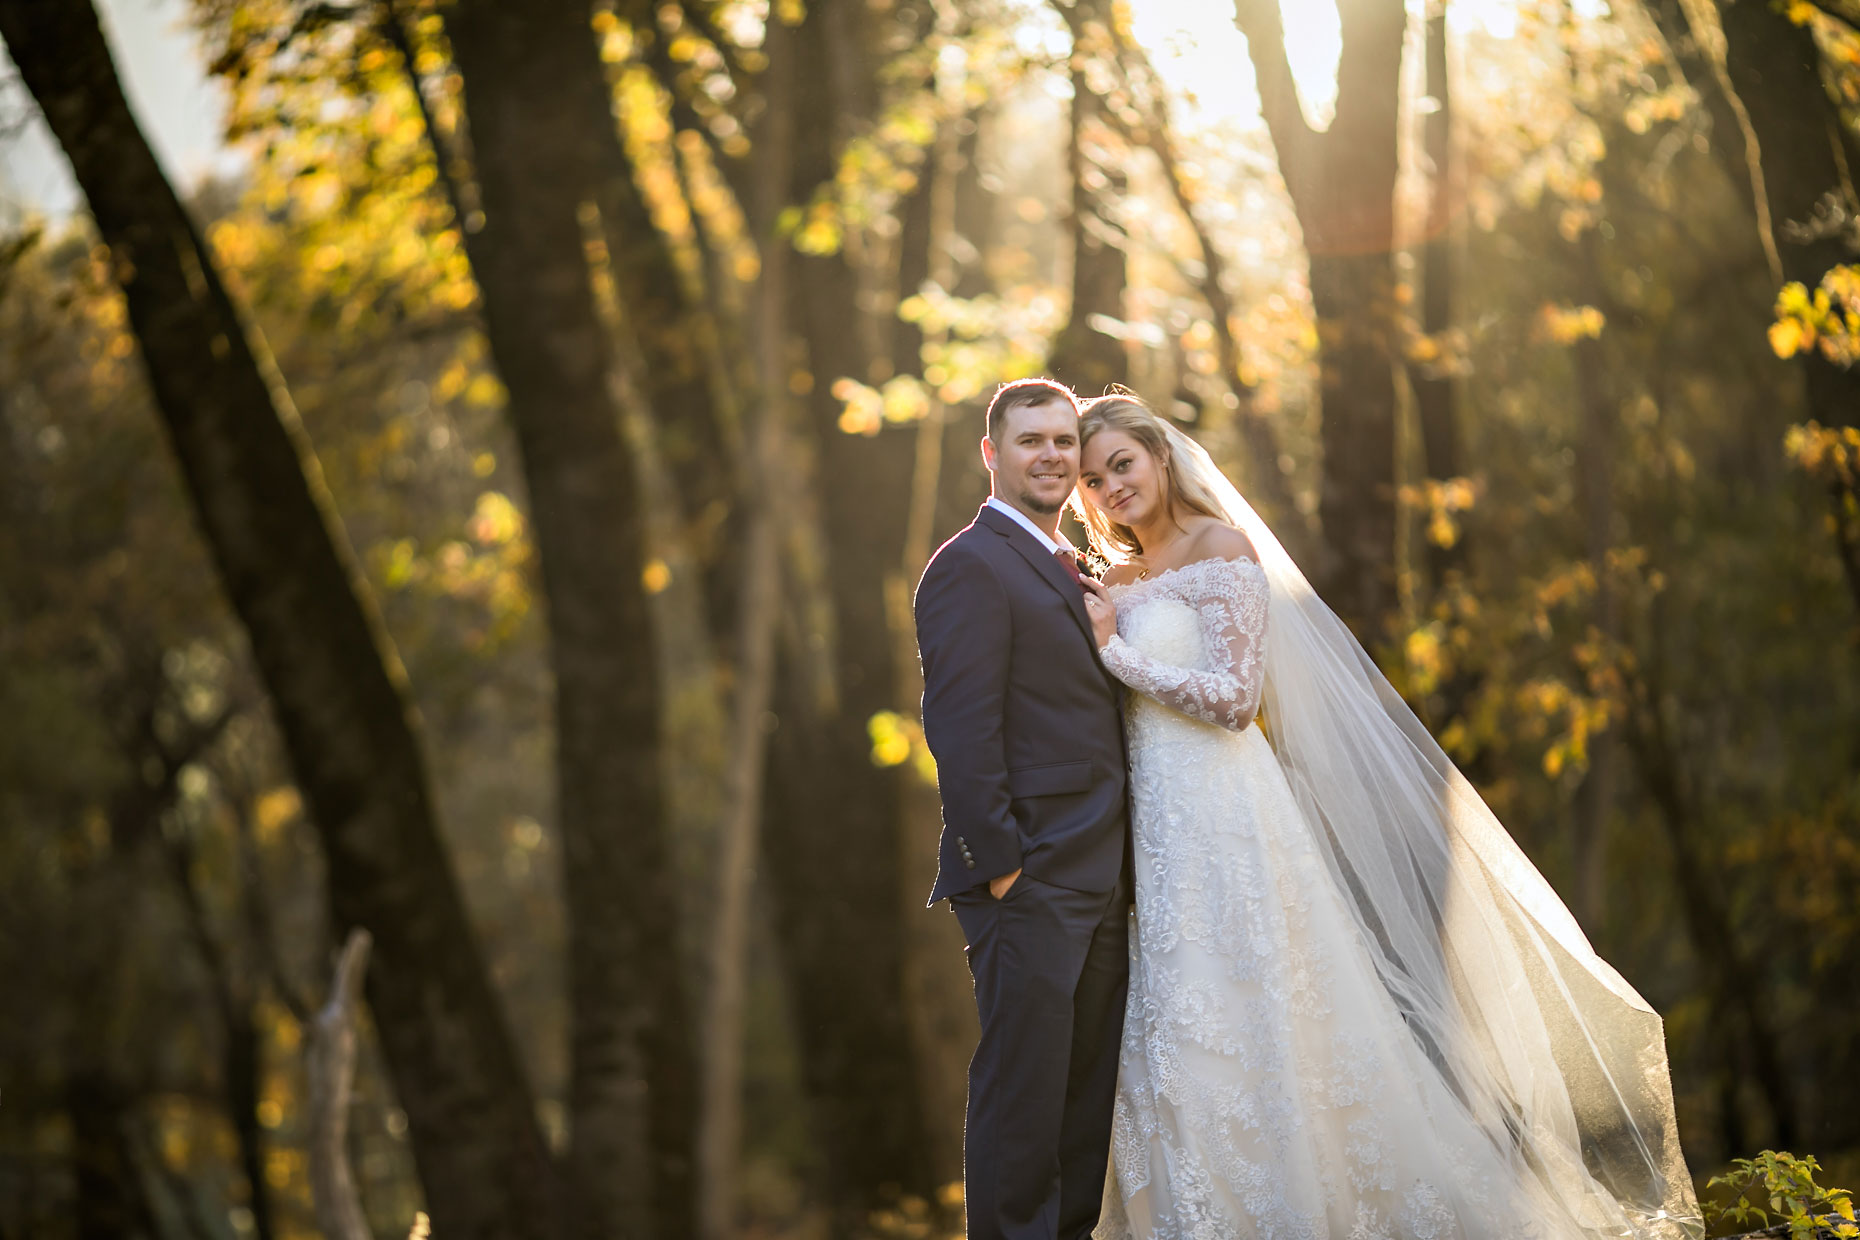 Wedding photography with fall colors in Yosemite.